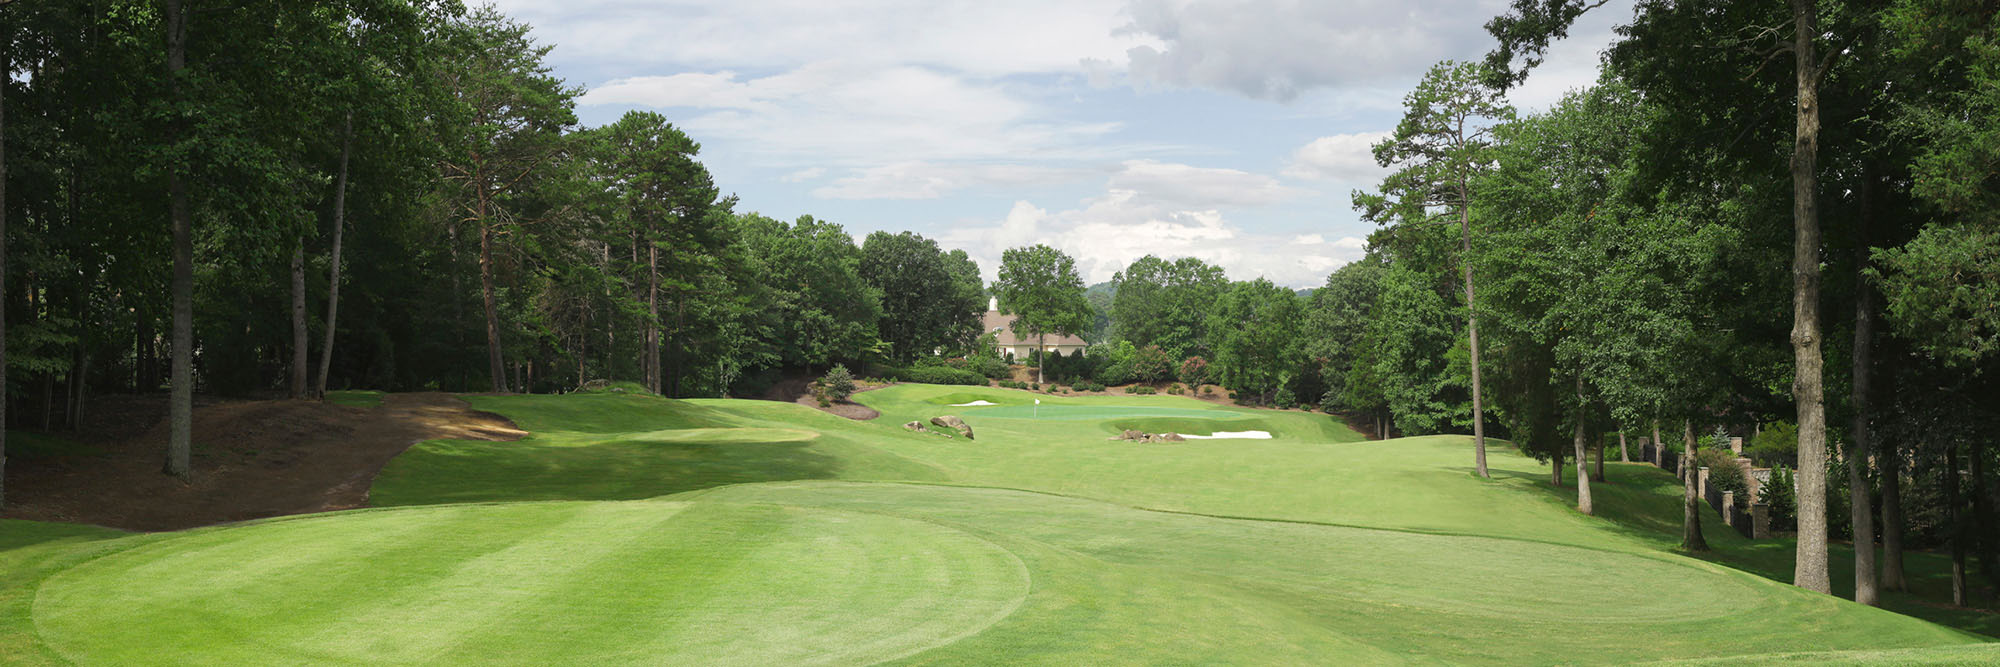 Golf Course Image - River Run Country Club No. 17